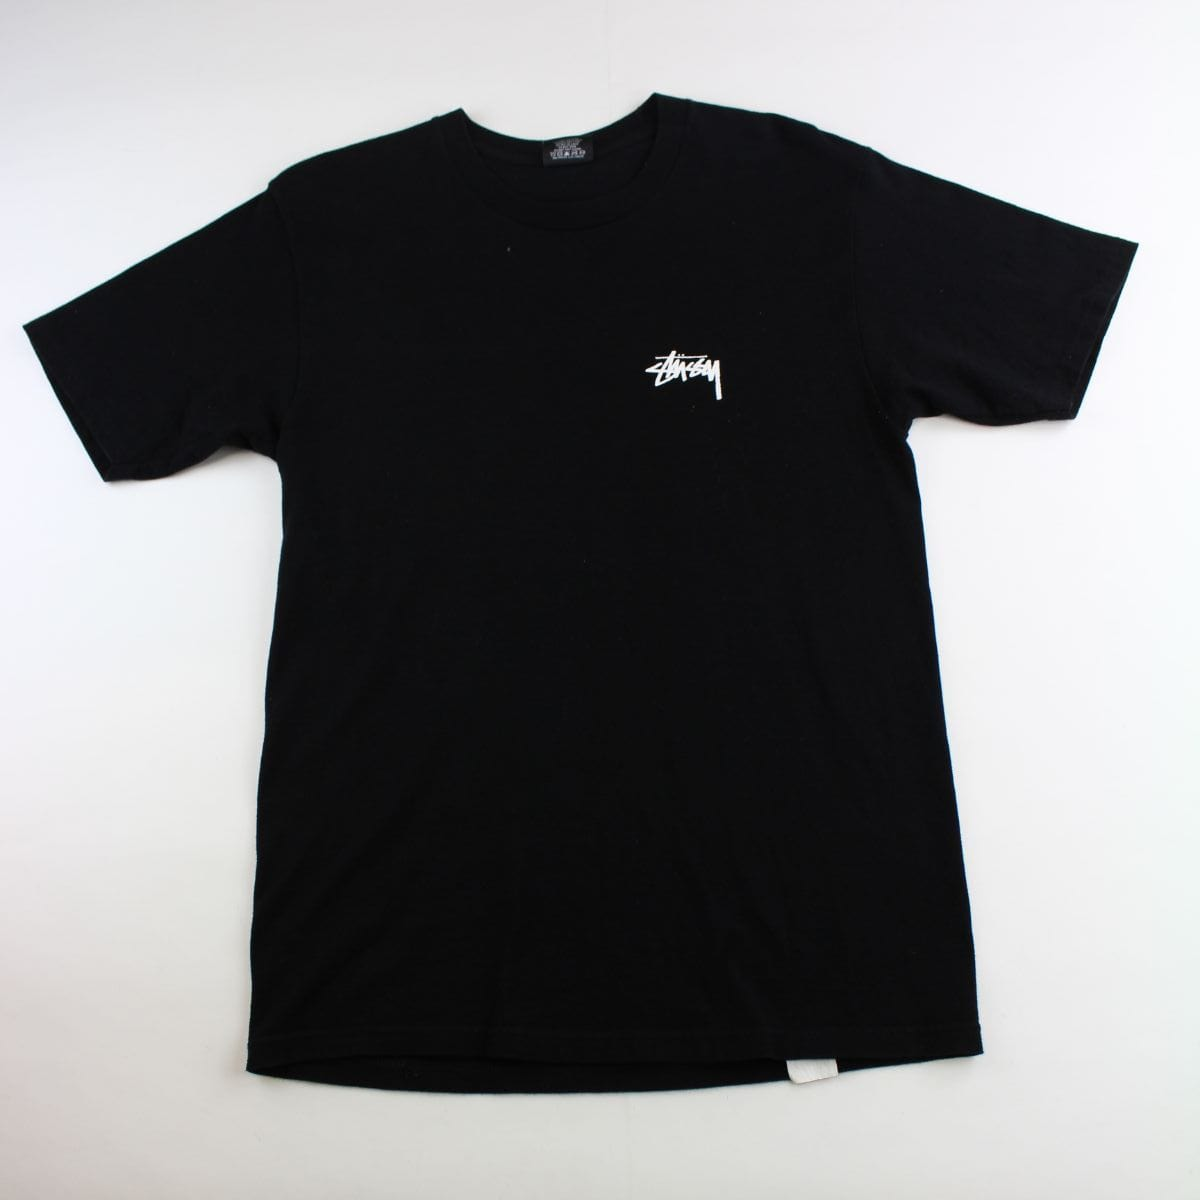 Stussy Checkered Surfer Logo Tee Black - SaruGeneral